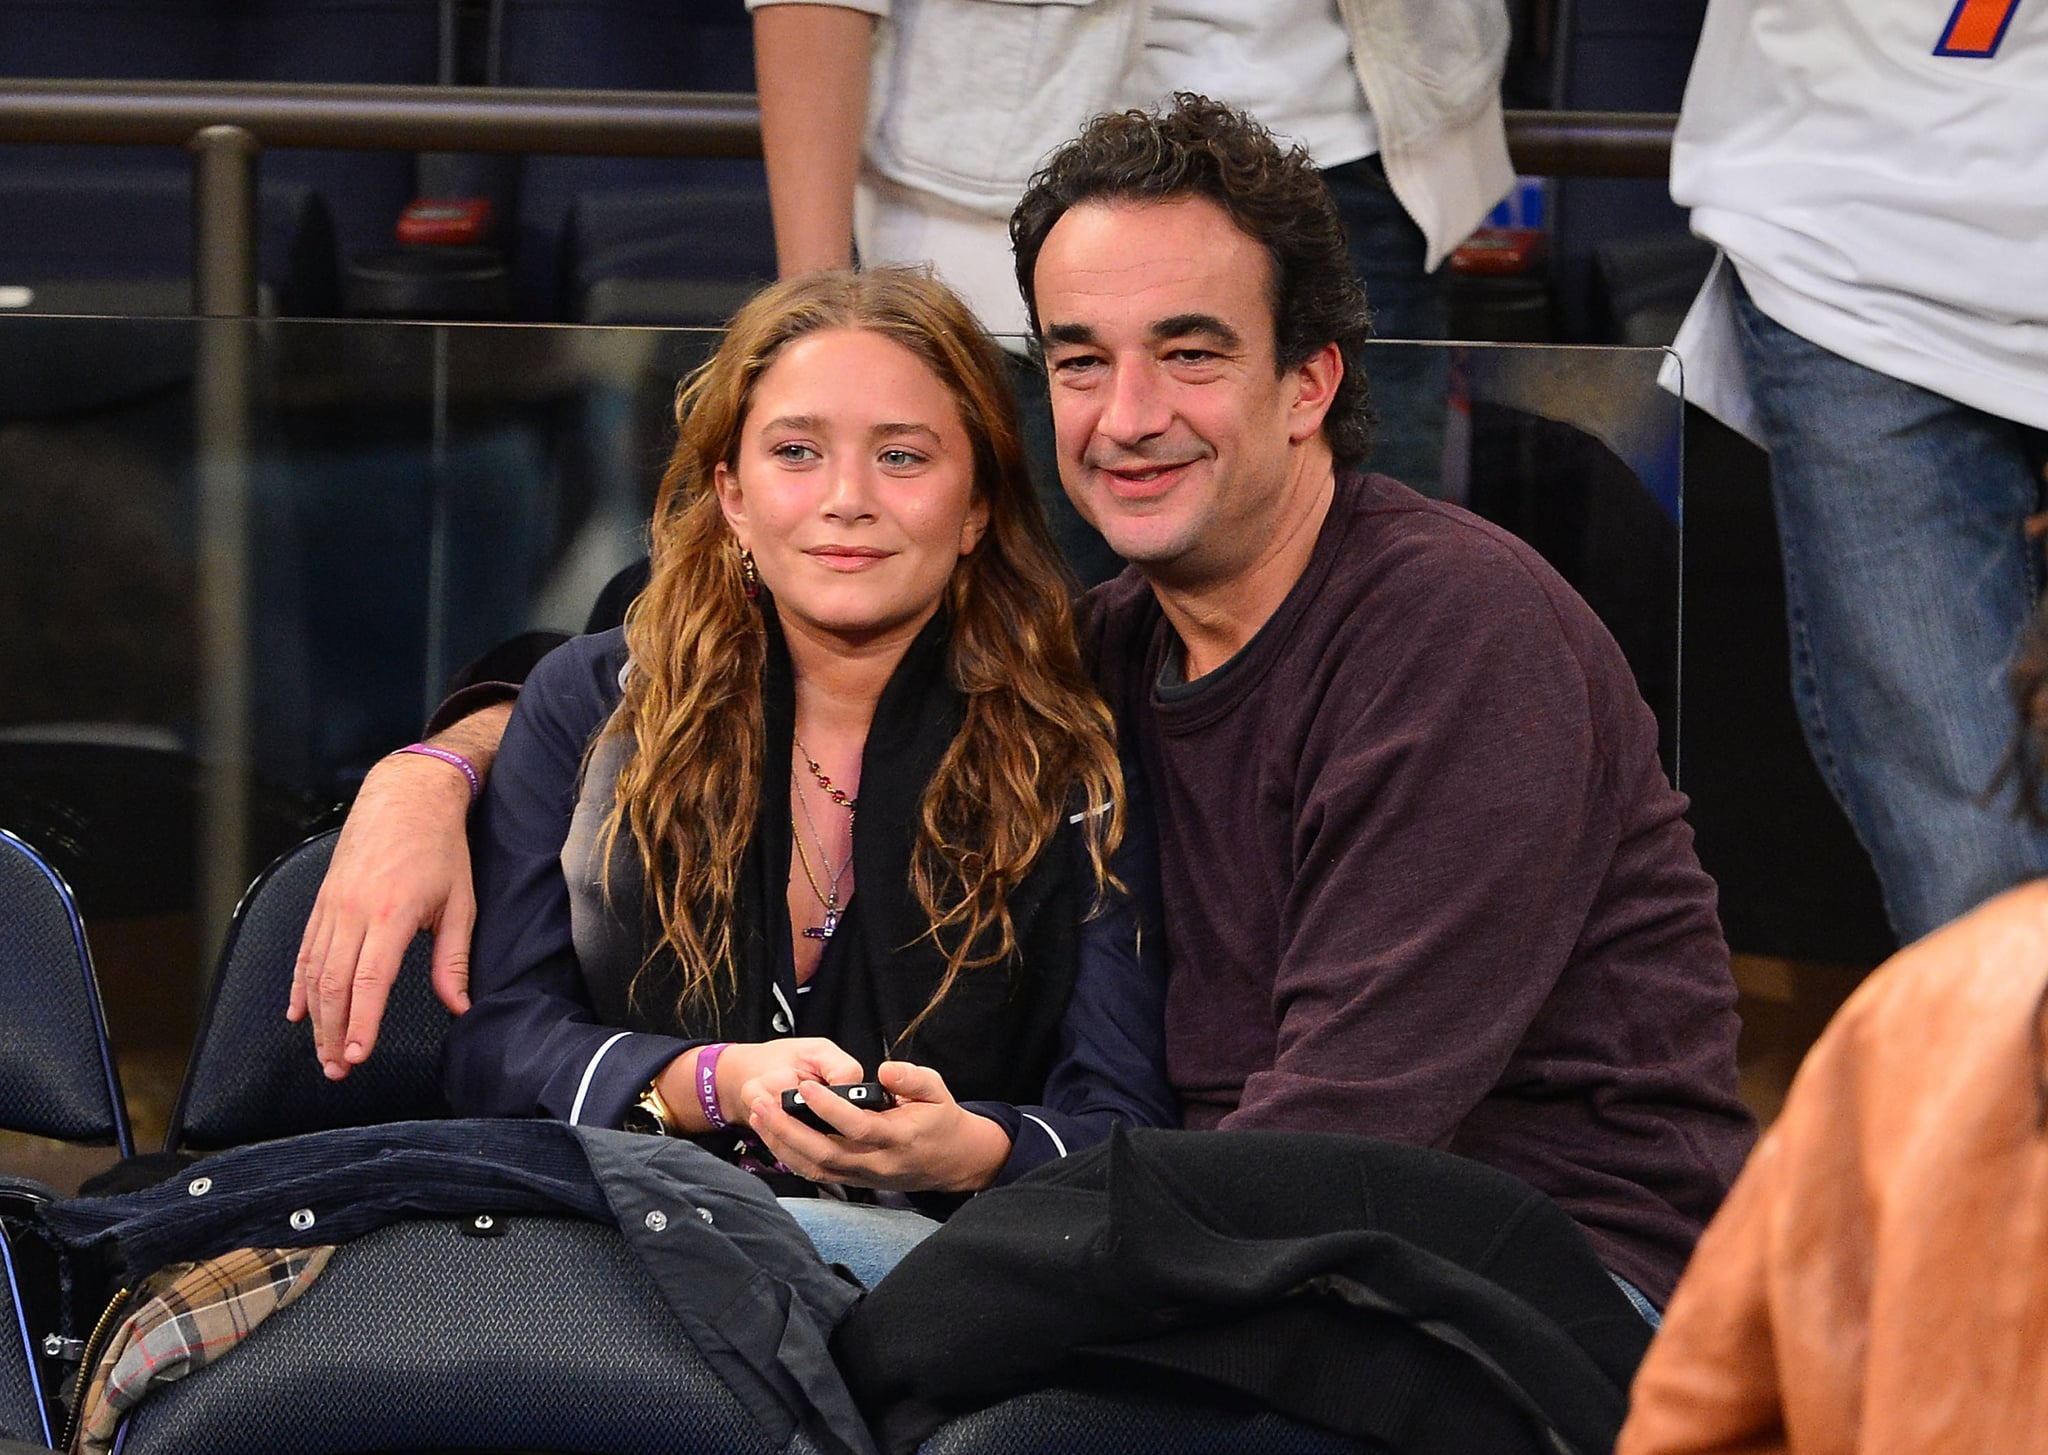 zniewolony 12 years a slave online dating: who is mary kate olsen dating now